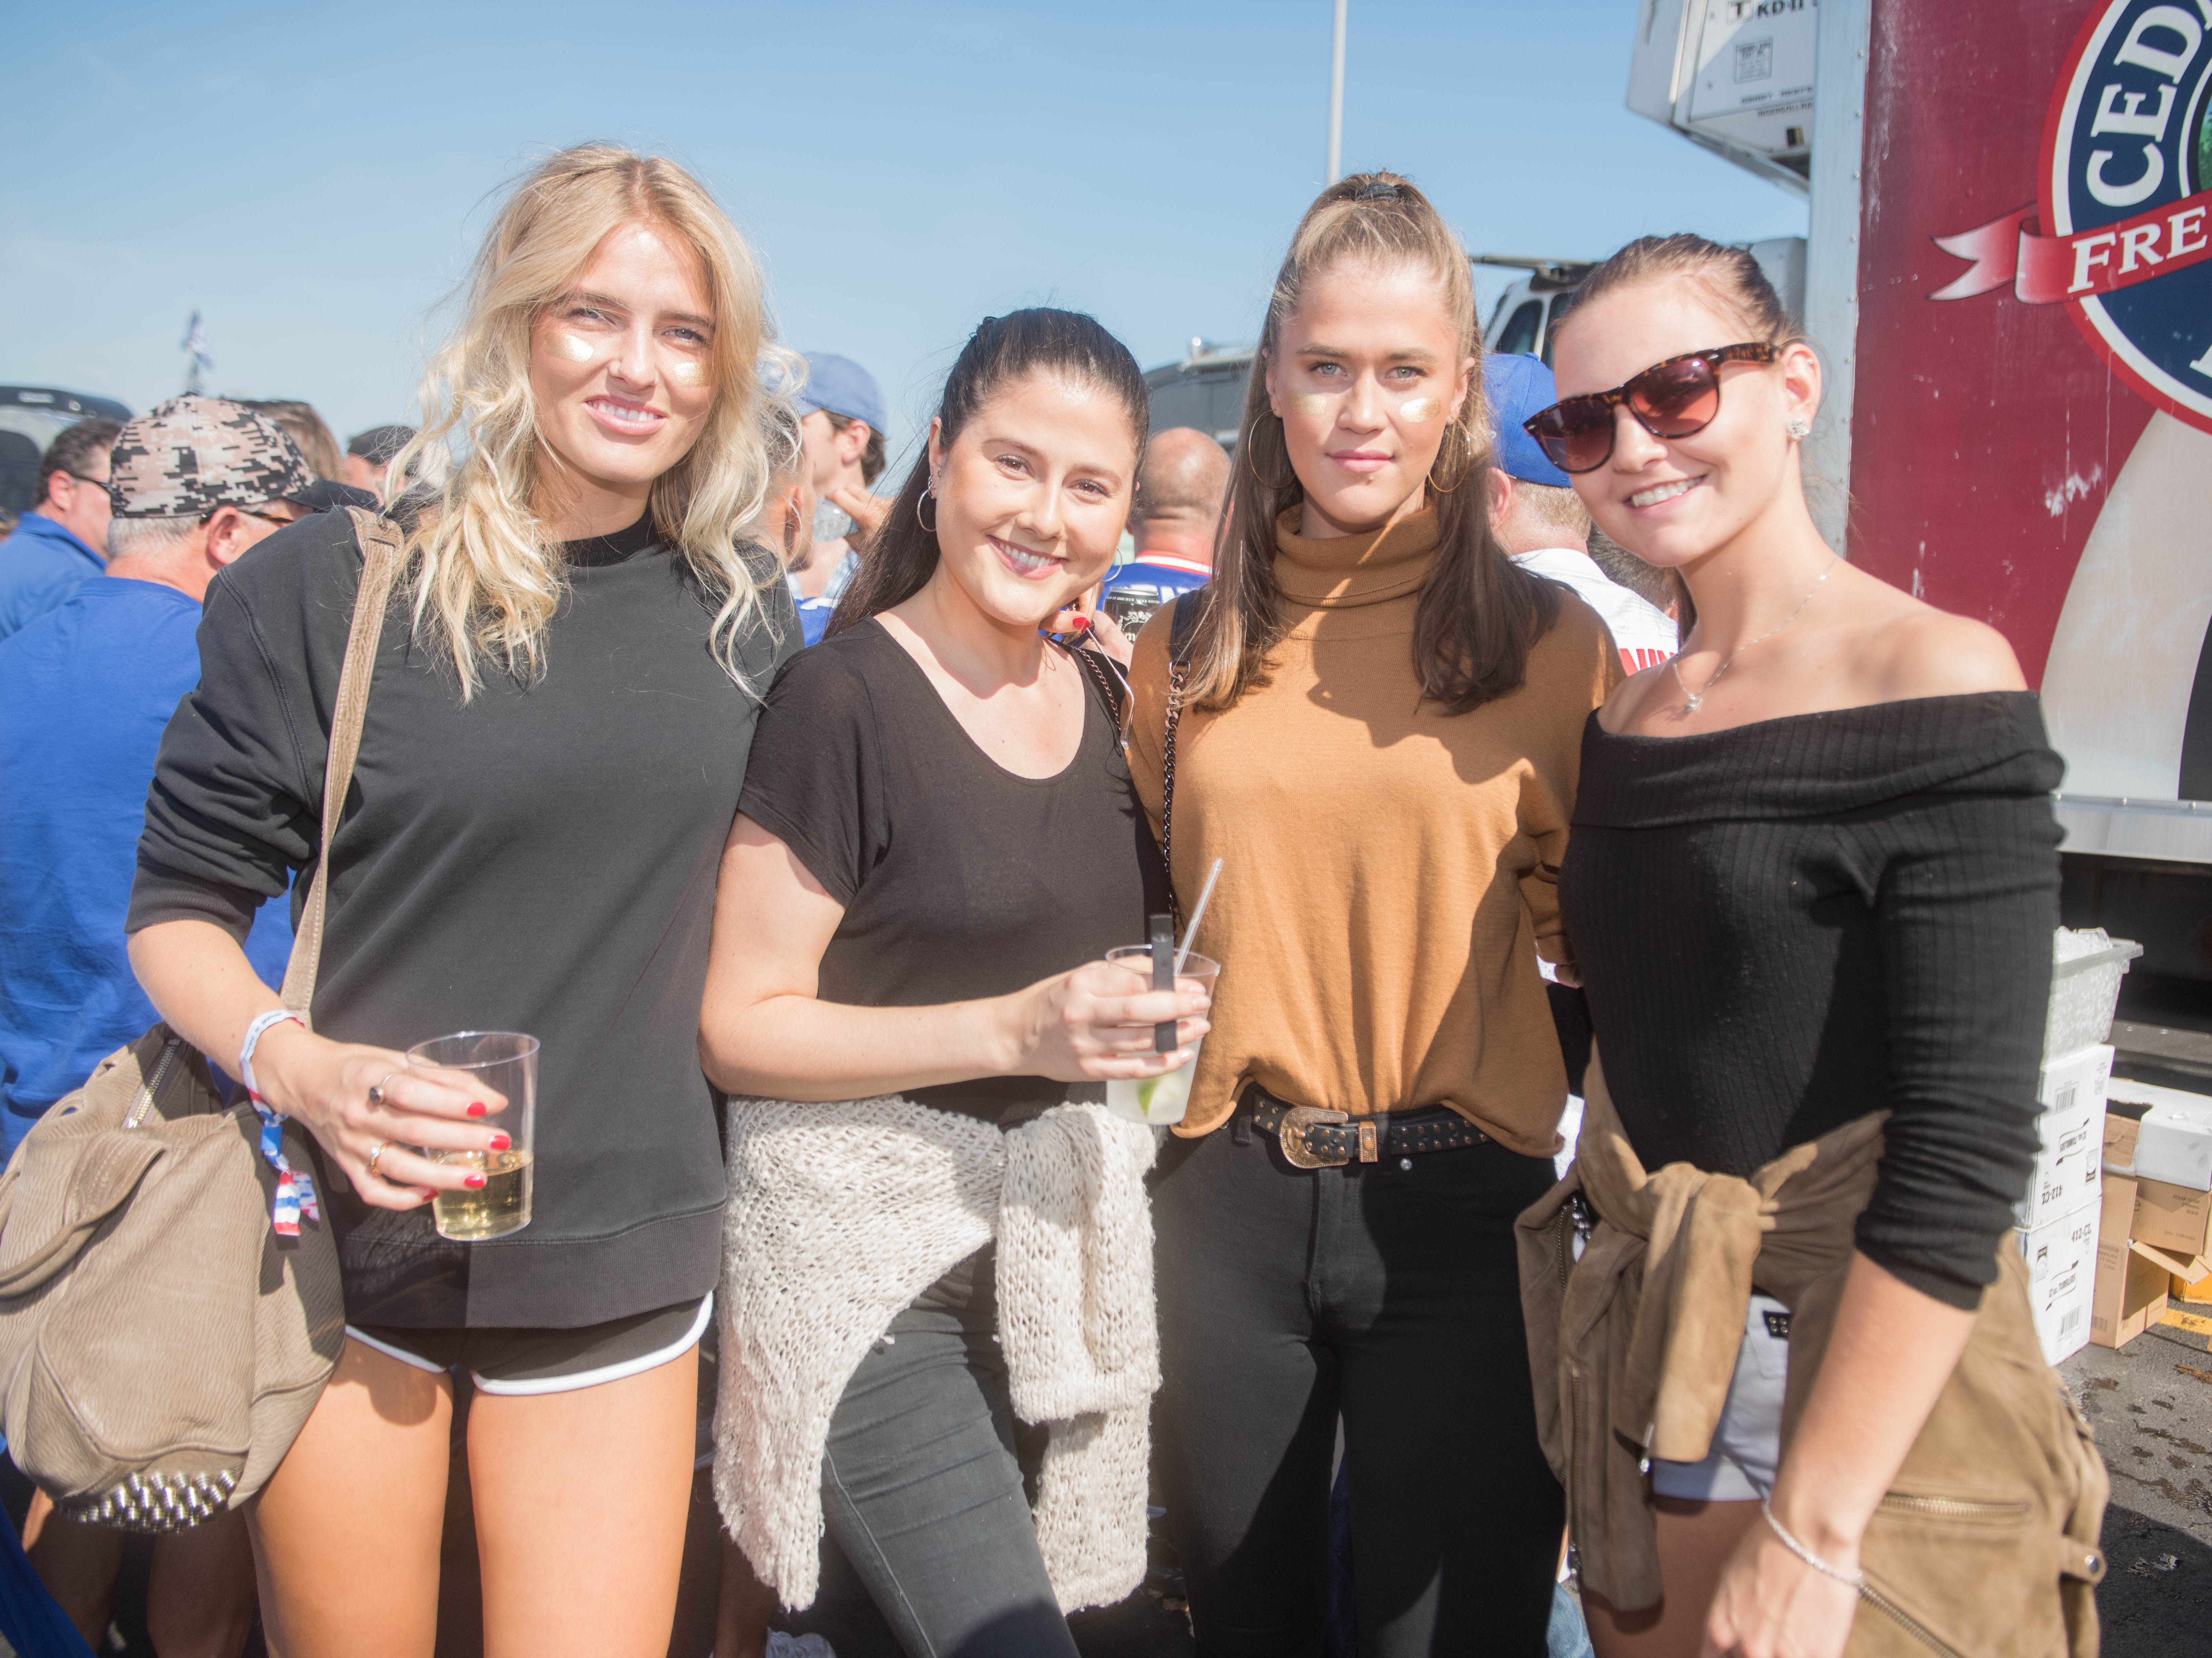 Kristin, Ivana, Cecile and Jenny at the Giants vs. Saints tailgate party, Sunday, Sept. 30, 2018.